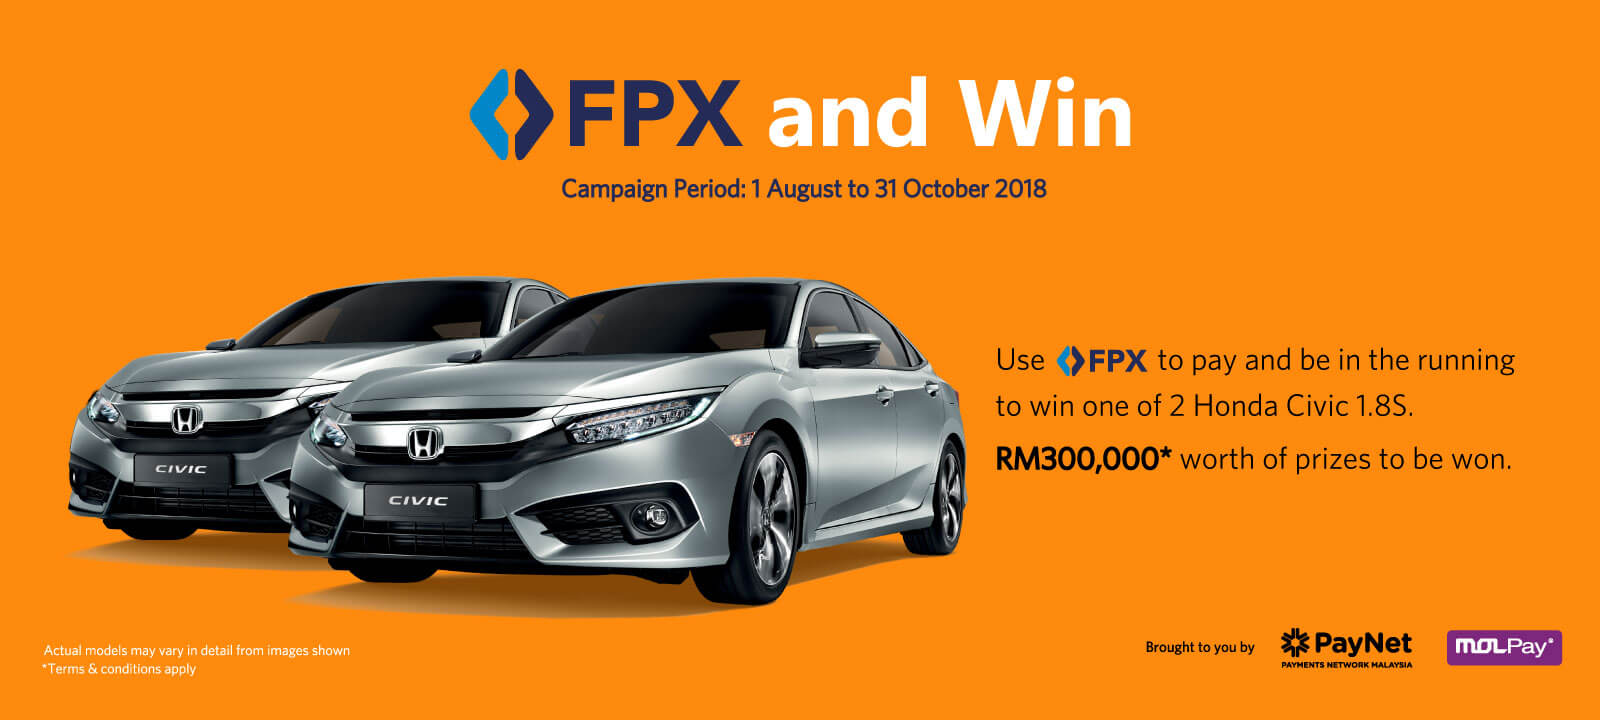 FPX and Win Civic